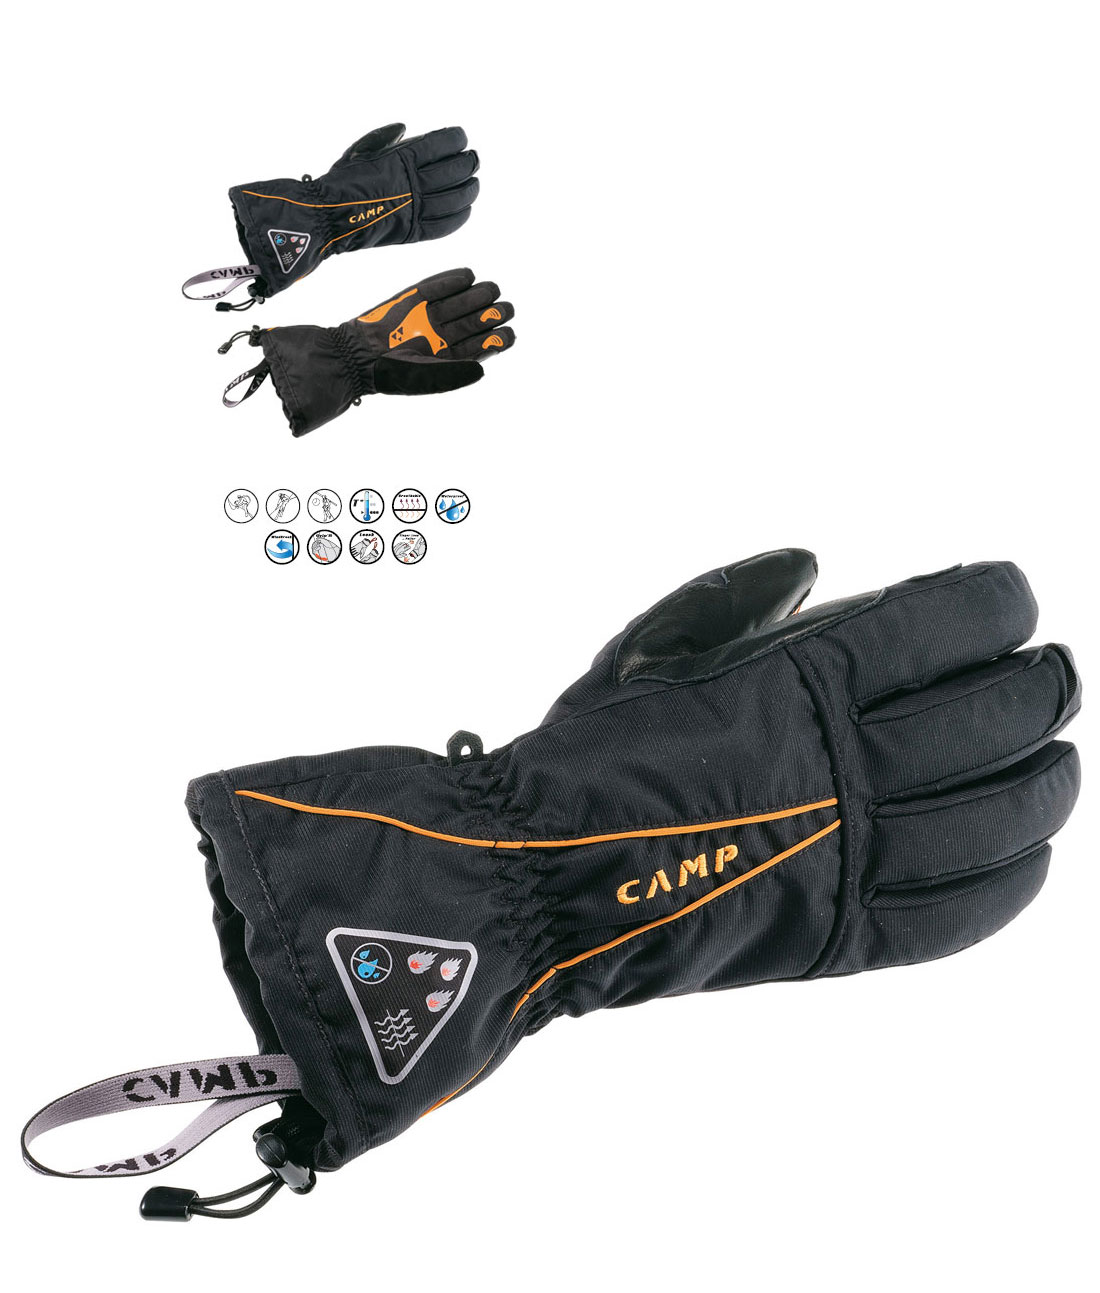 Camp G Shell+Lite Glove